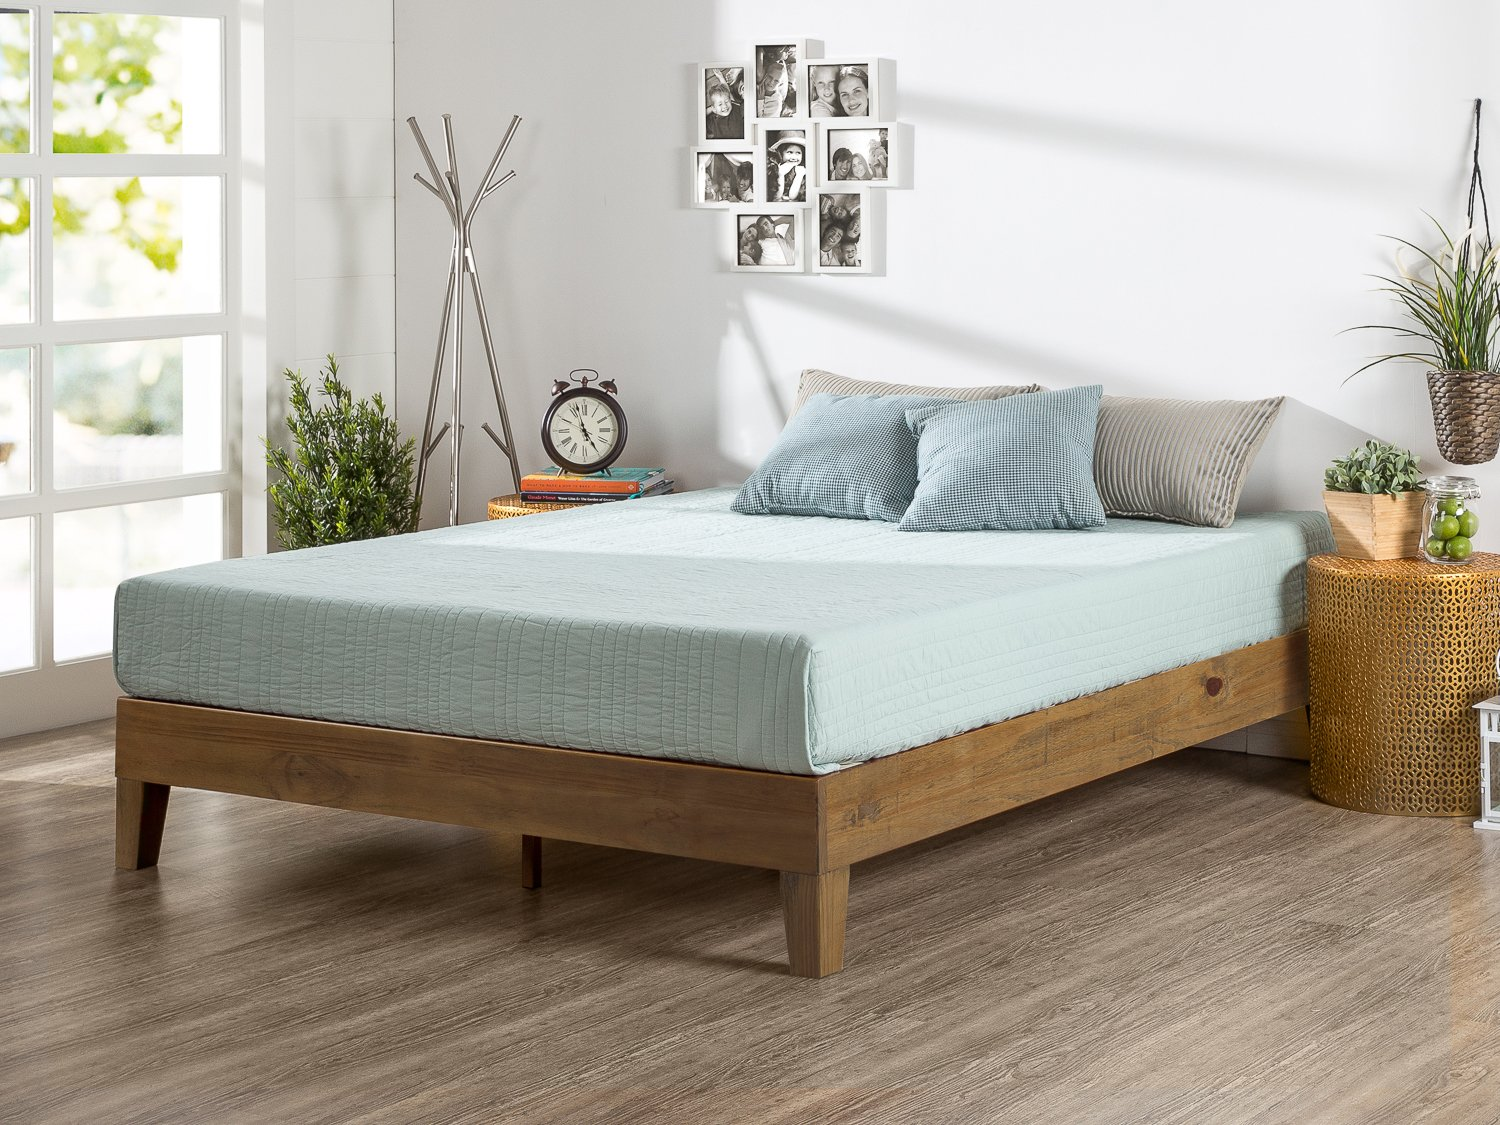 Zinus Alexis 12 Inch Deluxe Wood Platform Bed / No Box Spring Needed / Wood Slat Support / Rustic Pine Finish, Full by Zinus